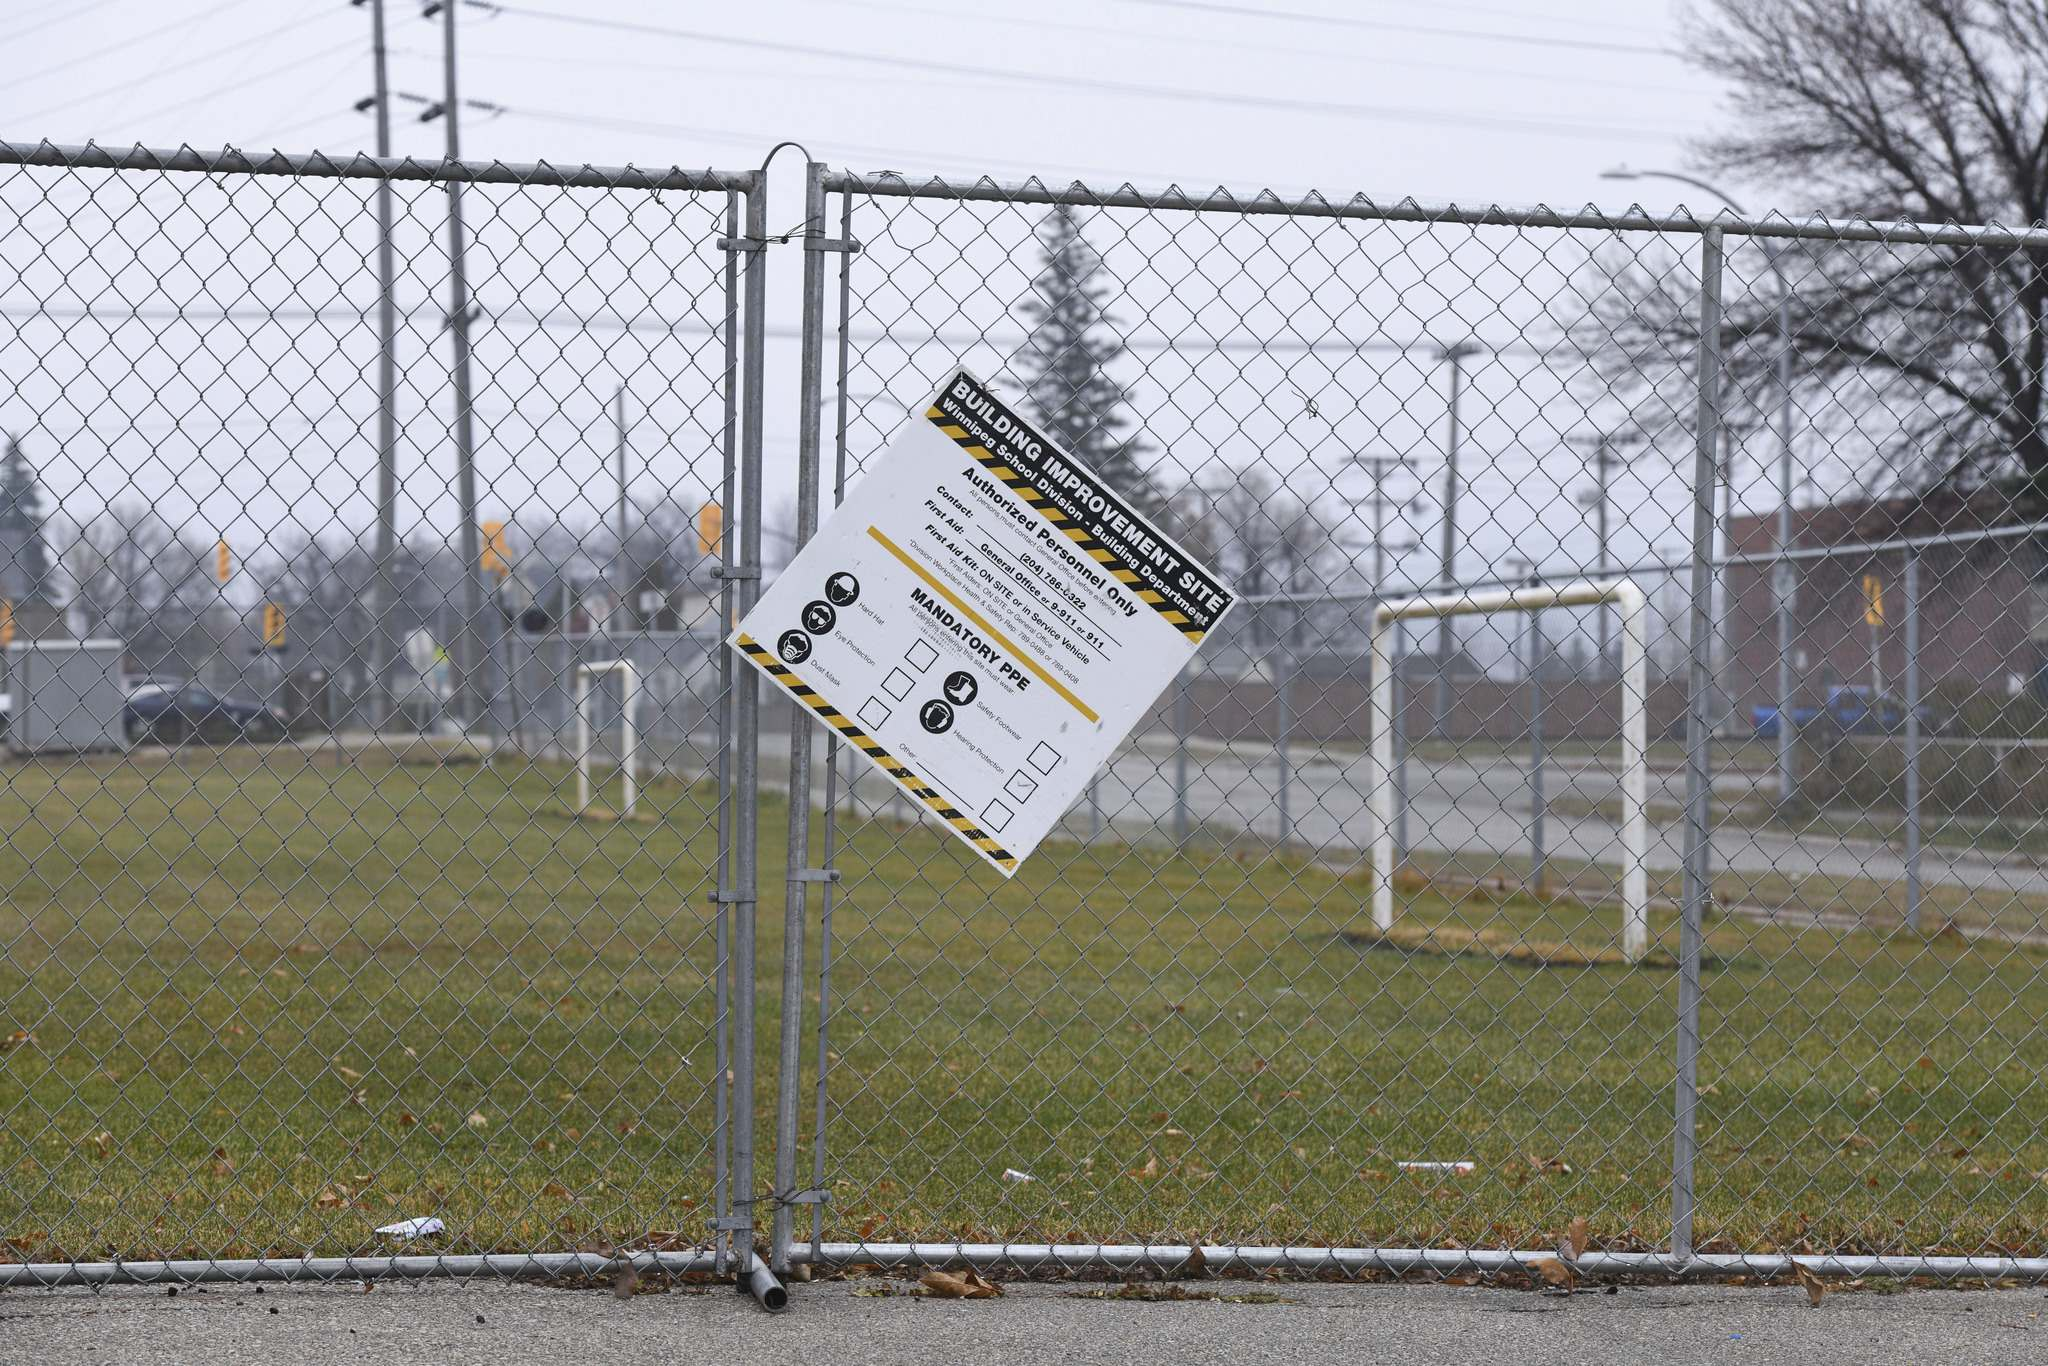 The field at Weston School has been closed since a report on high lead levels in the soil was released last month. (Mike Sudoma / Winnipeg Free Press)</p></p>